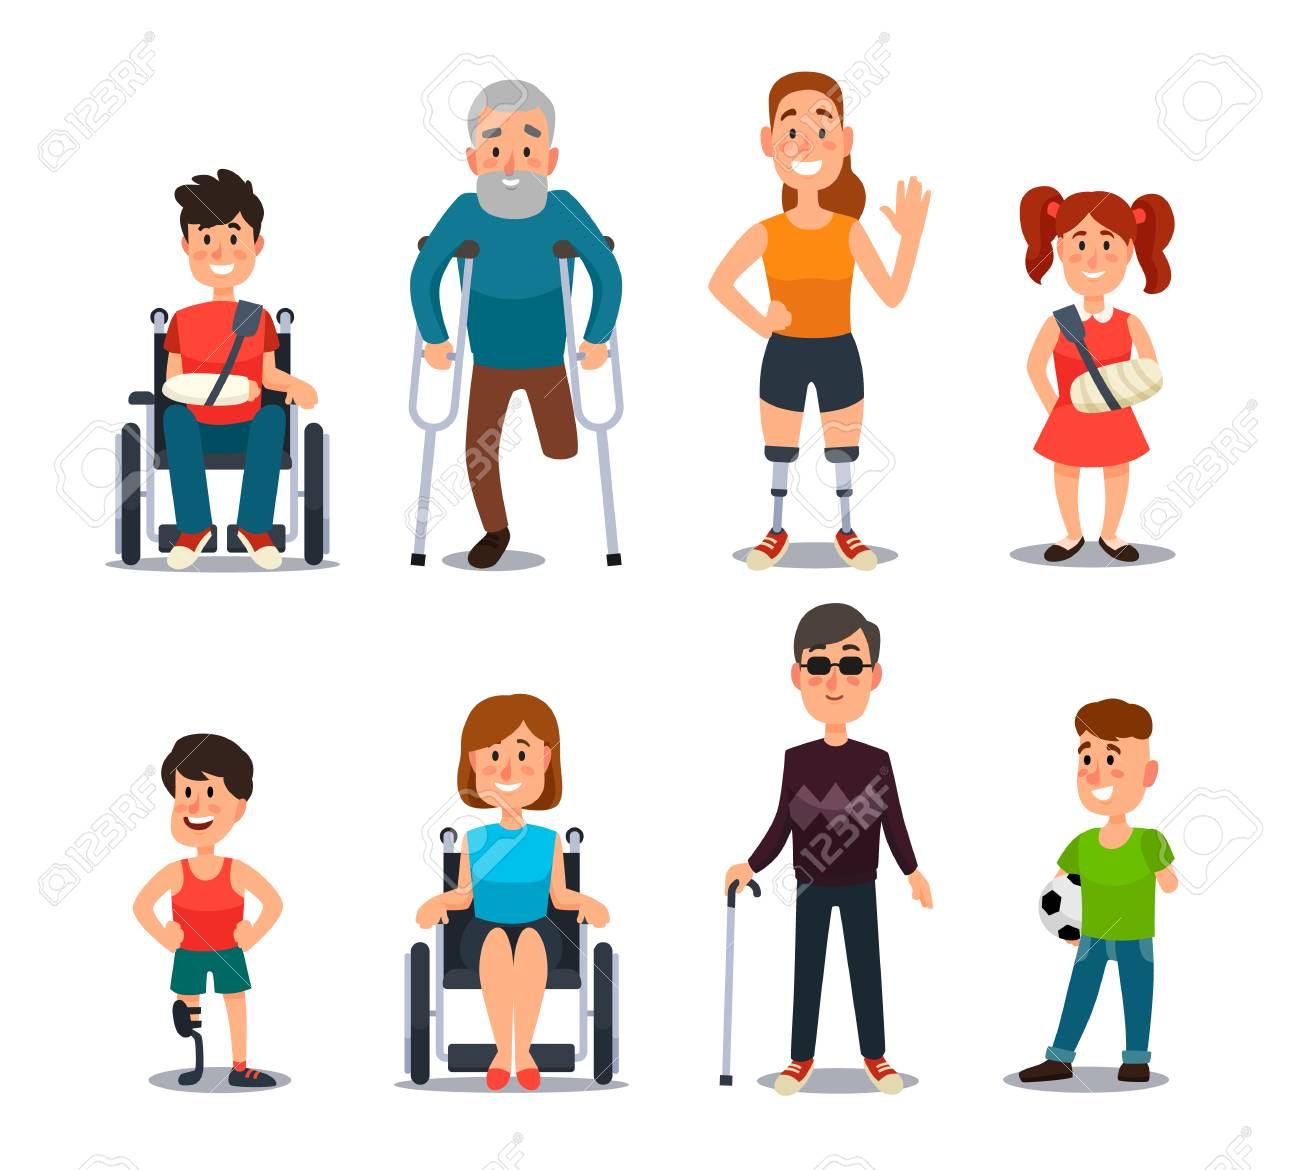 Disability people. Cartoon sick and disabled characters. Person in wheelchair, injured woman, elderly man and happy girl after accident diverse and sickness child colorful vector isolated set - 106148461